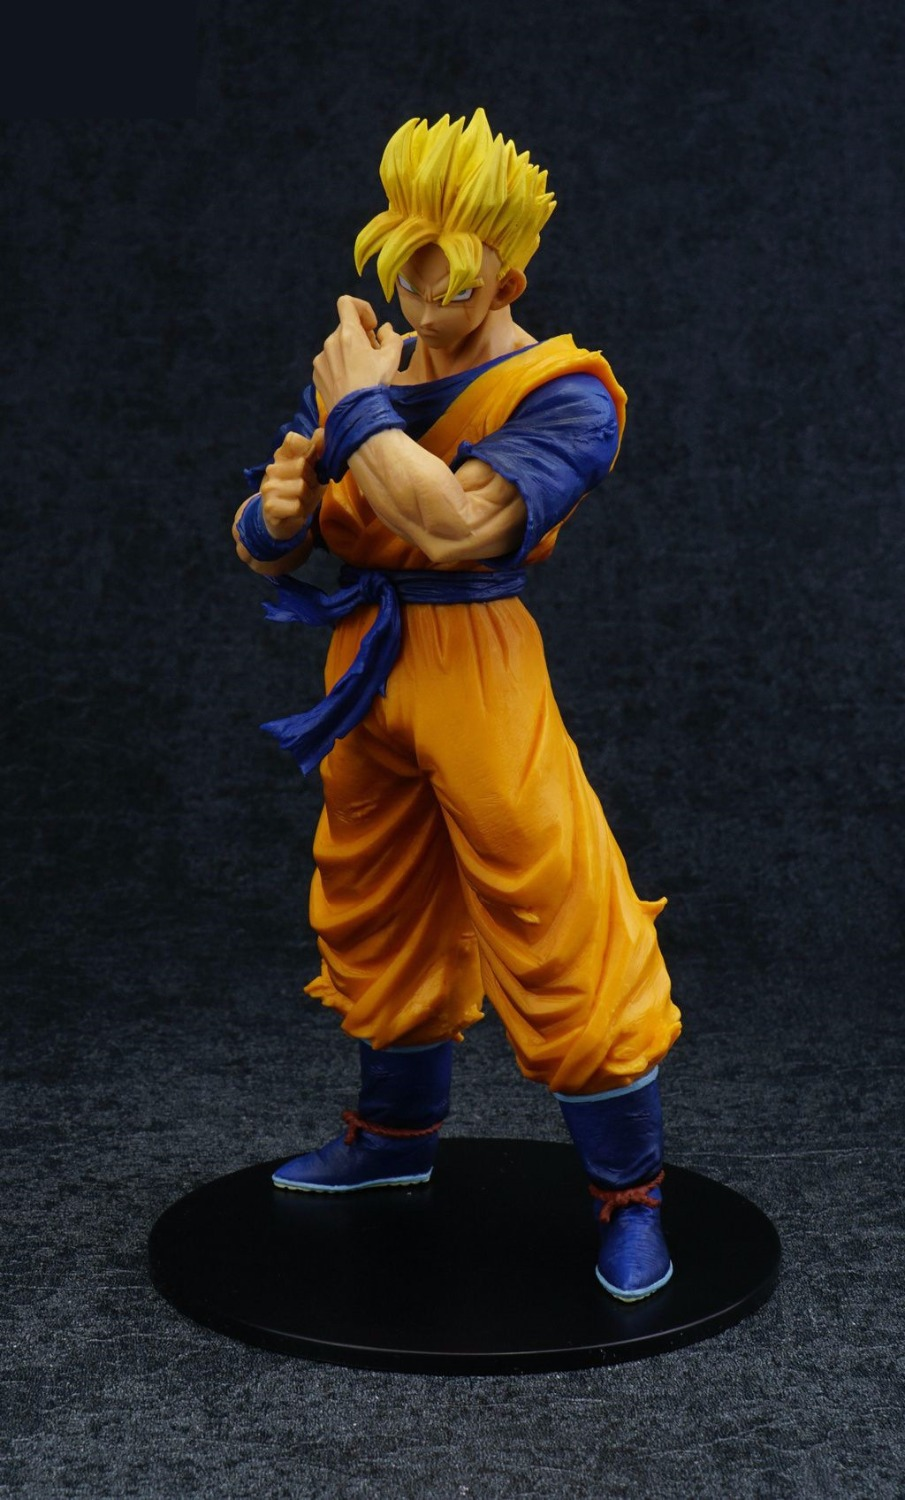 21CM Japanese anime figure Banpresto Resolution of Soldiers ROS Vol.6 Collection Figure - Son Gohan Future ver.Dragon Ball Z act  [pcmos] anime dragon ball z ros resolution of soldiers awaken son gokou 57 pvc figure 15cm 6in toys collection no box 5932 l